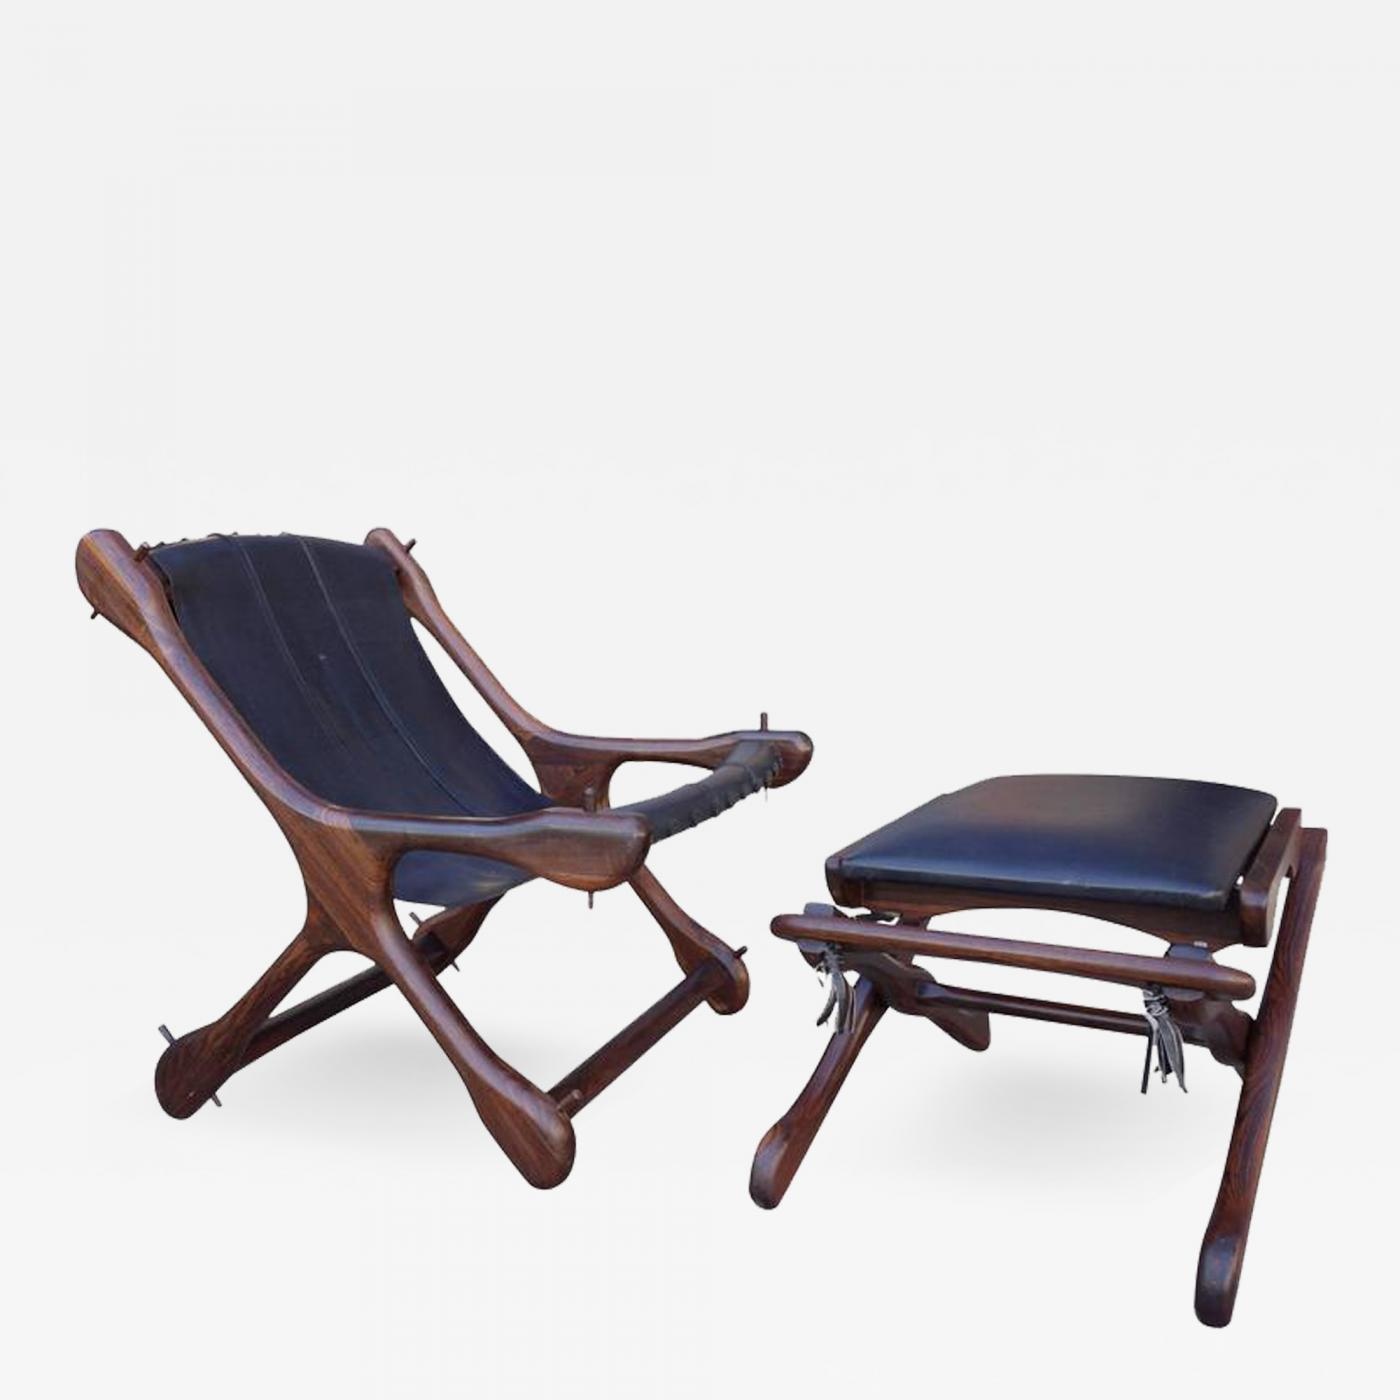 leather sling chairs dining room chair covers au don shoemaker mid century and ottoman in rosewood